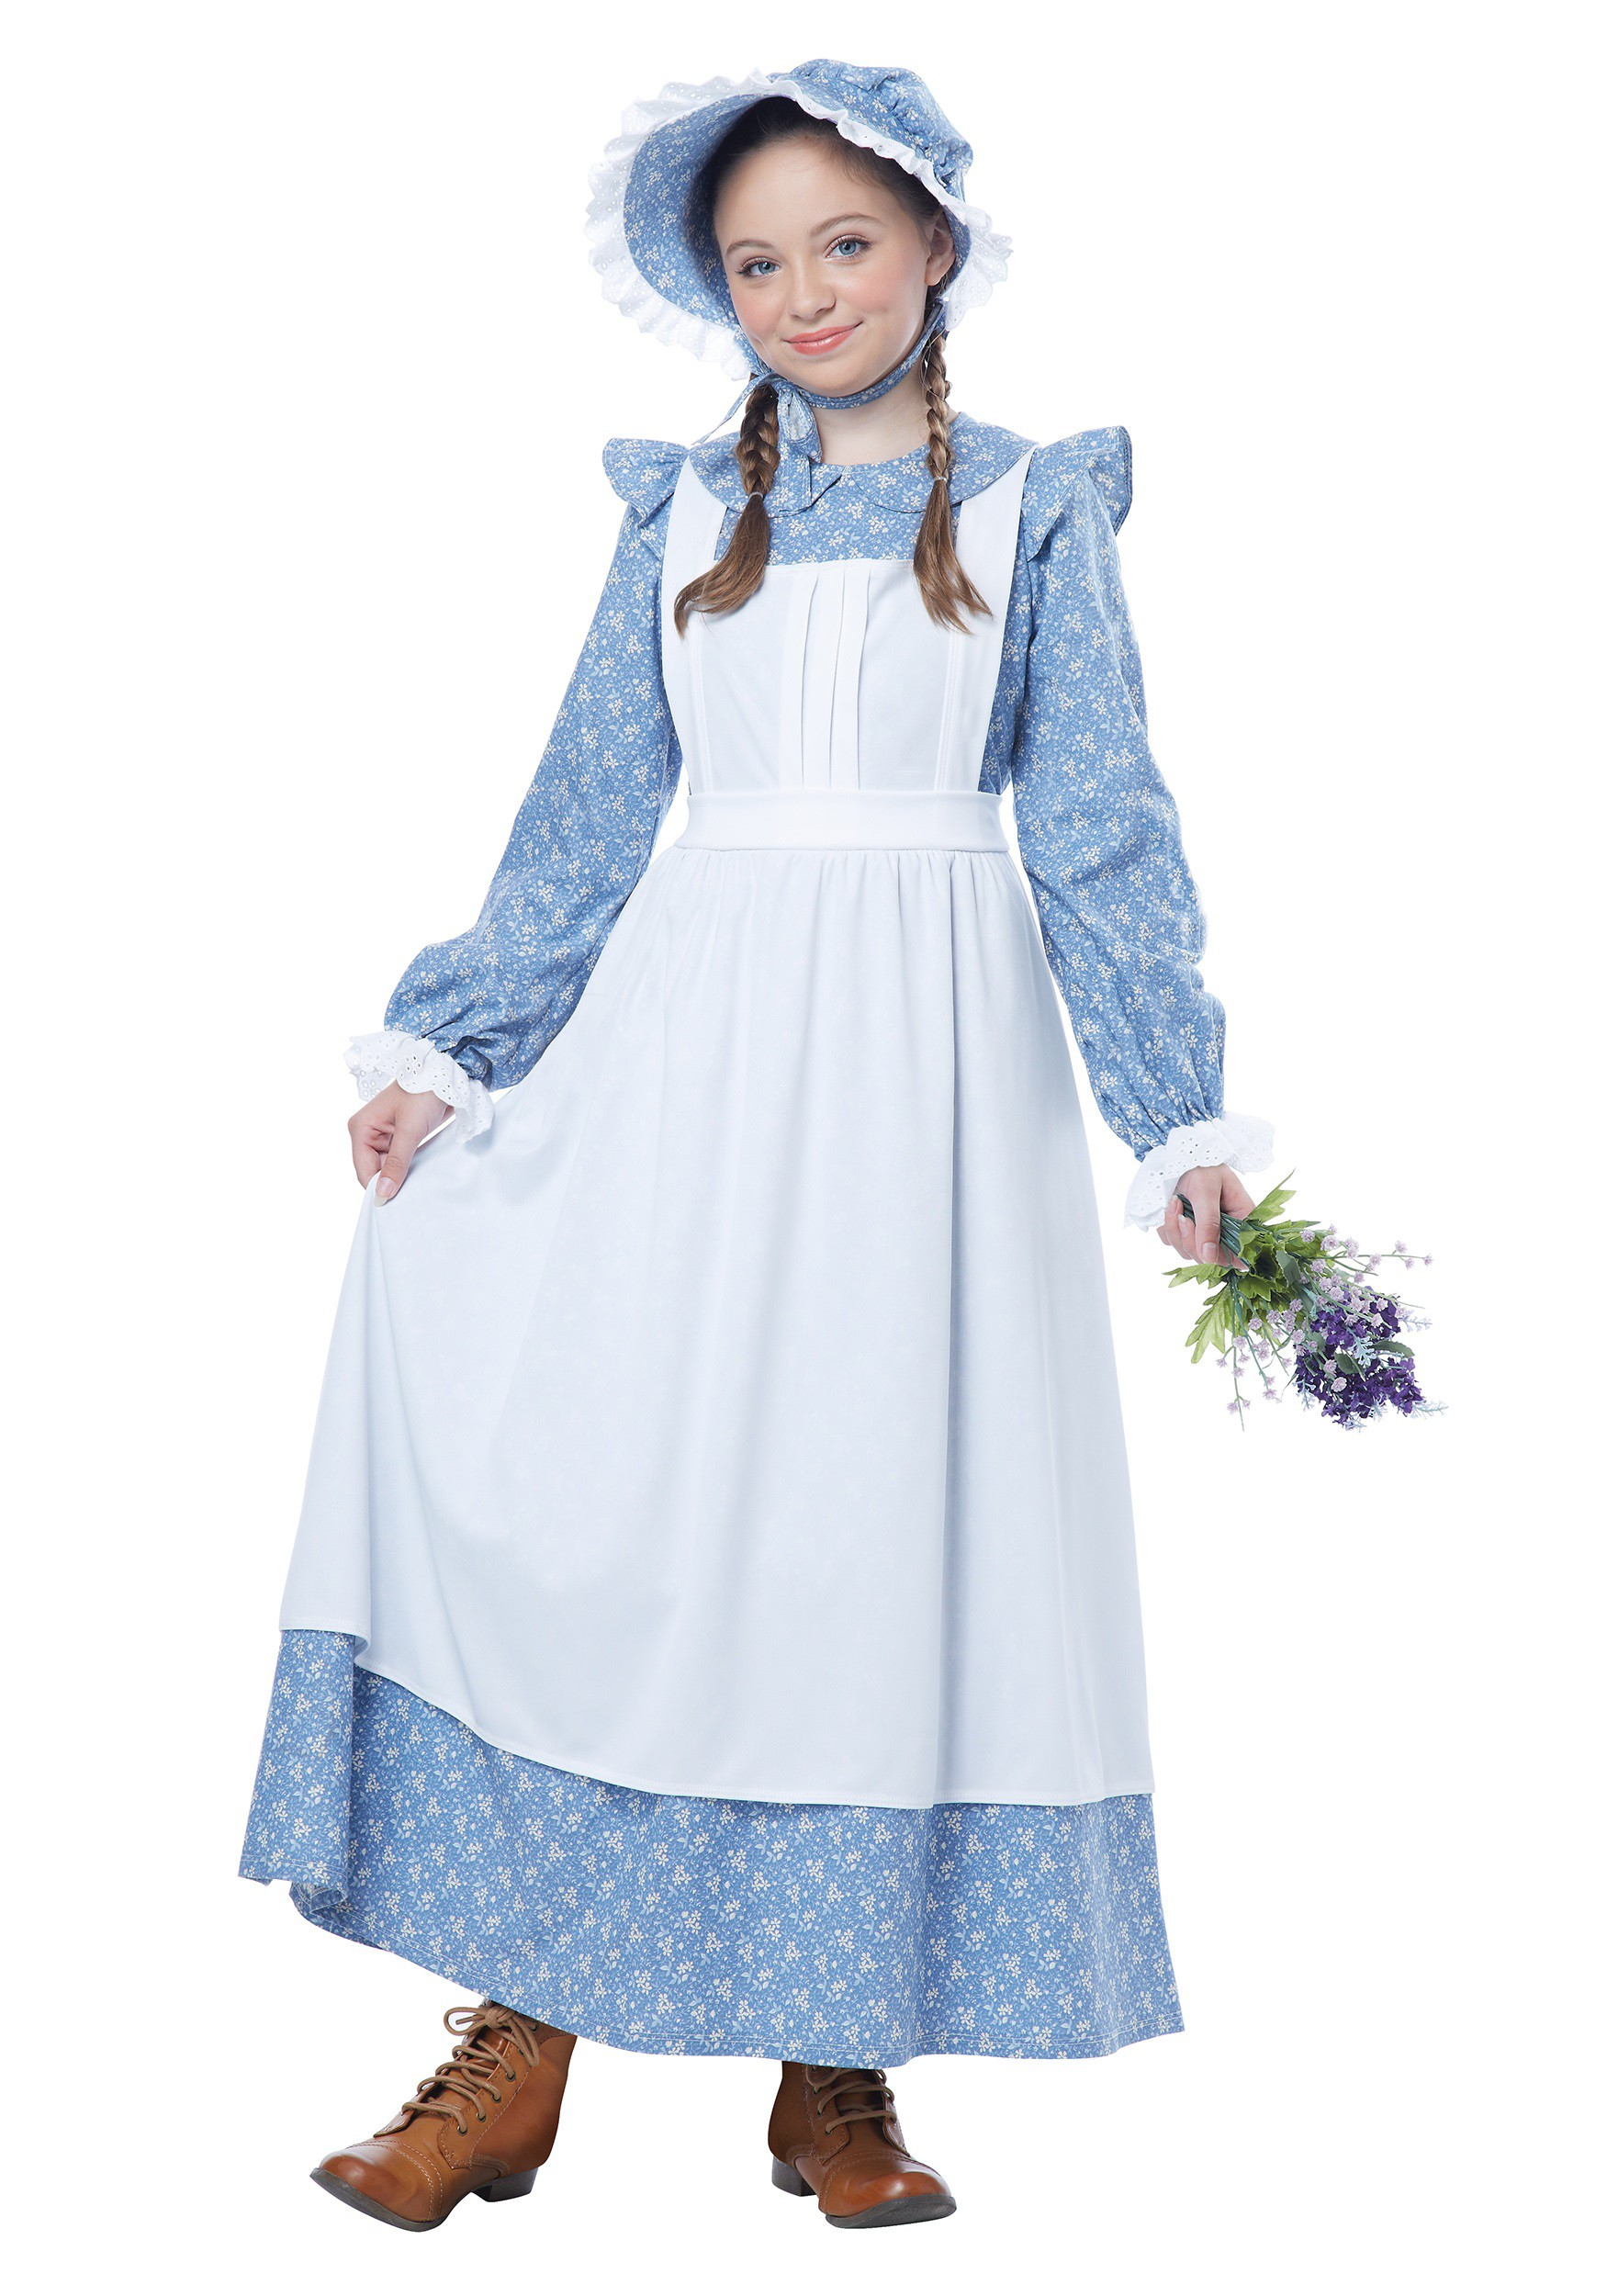 Pioneer Girl Costume for Kids | Historical Costume